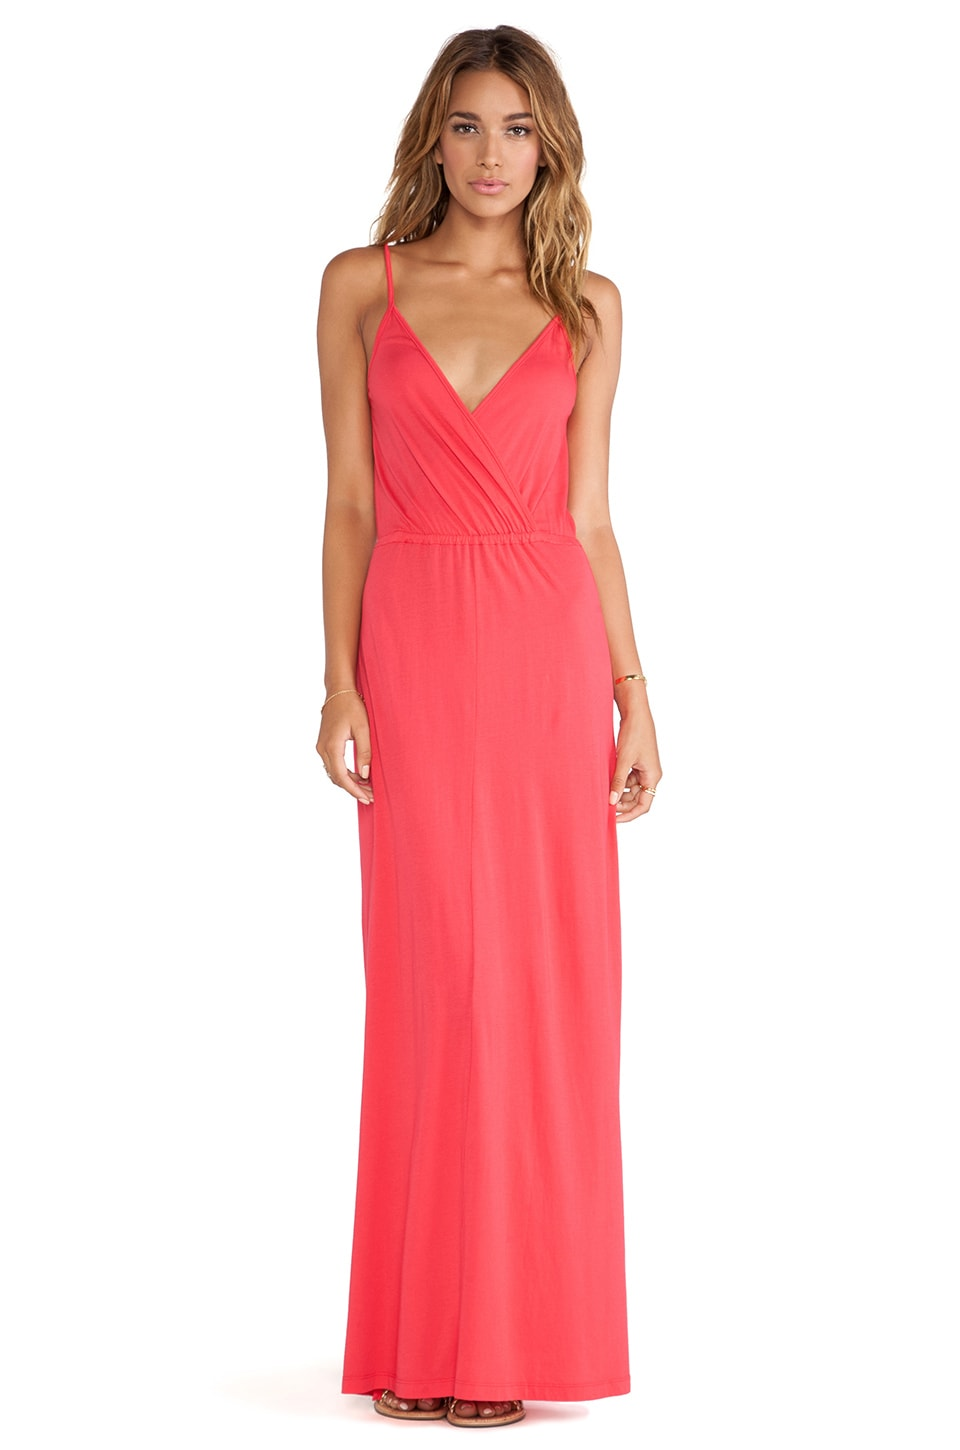 Bobi Modal Jersey Tank Maxi Dress in Berry Red